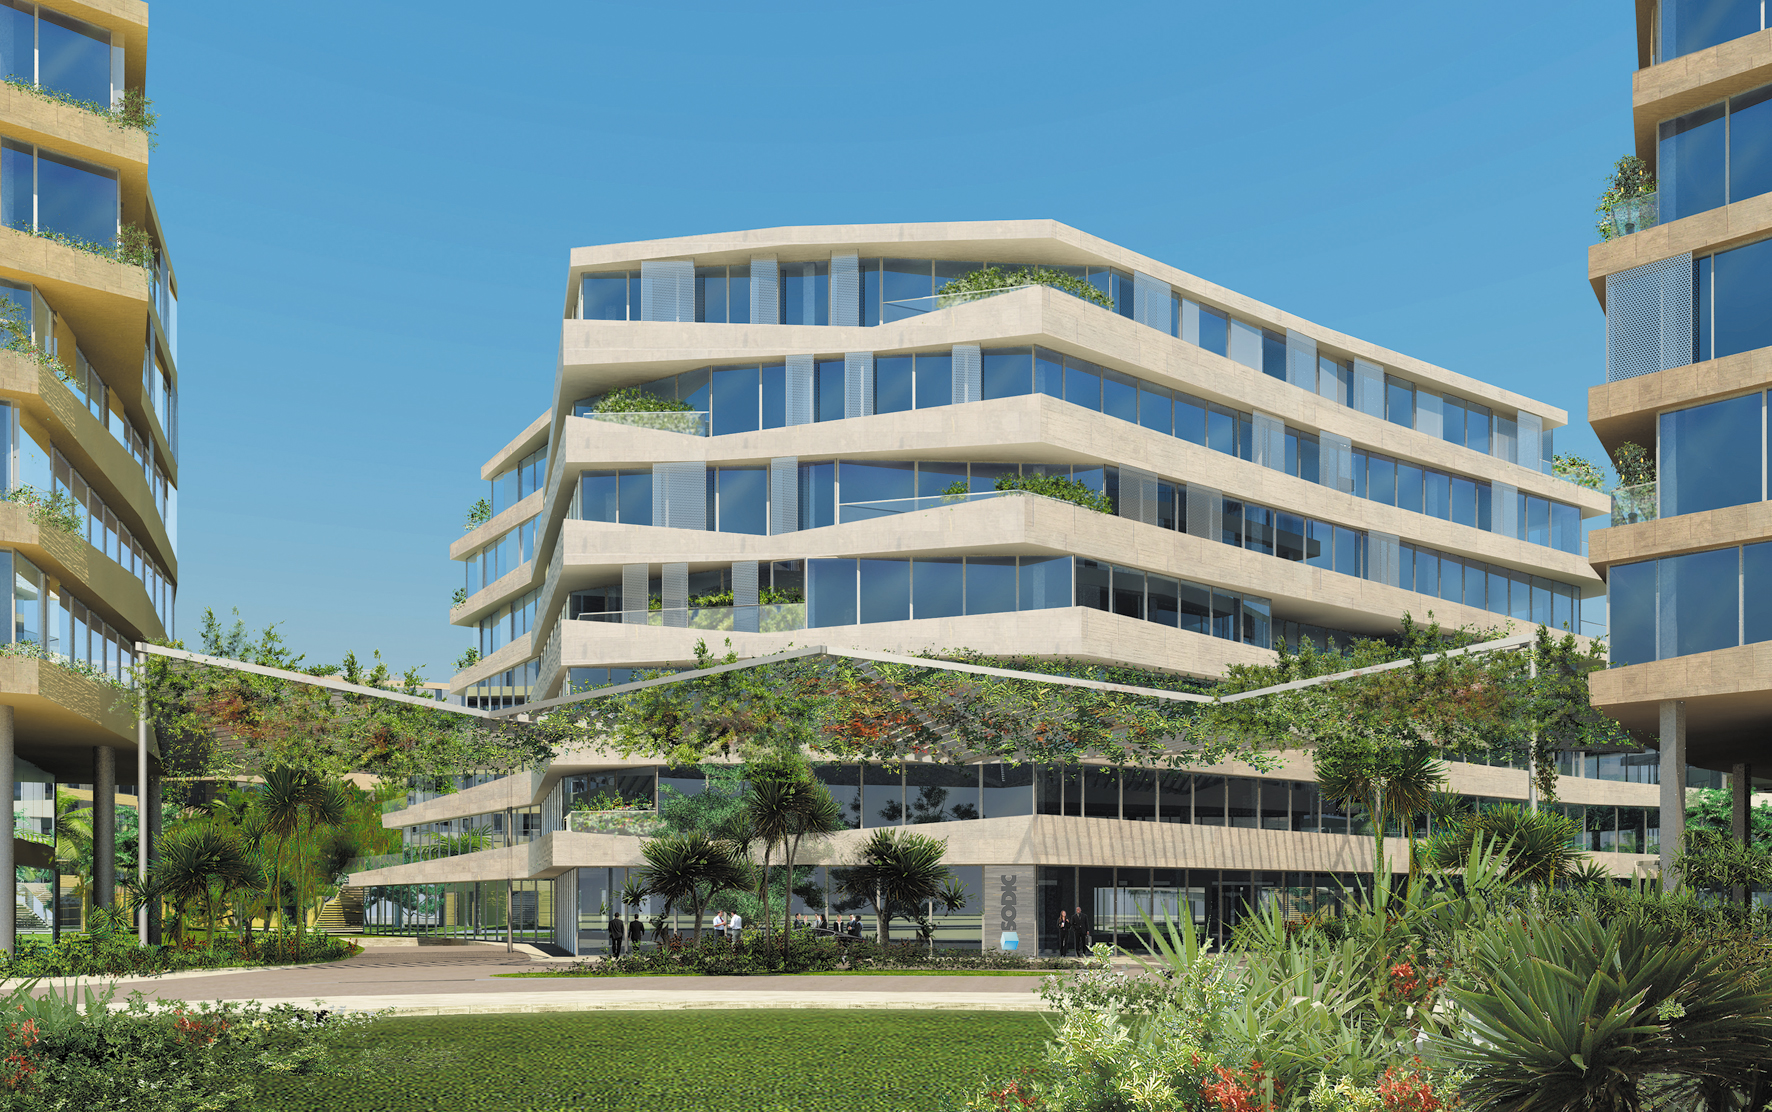 438-office-building-09